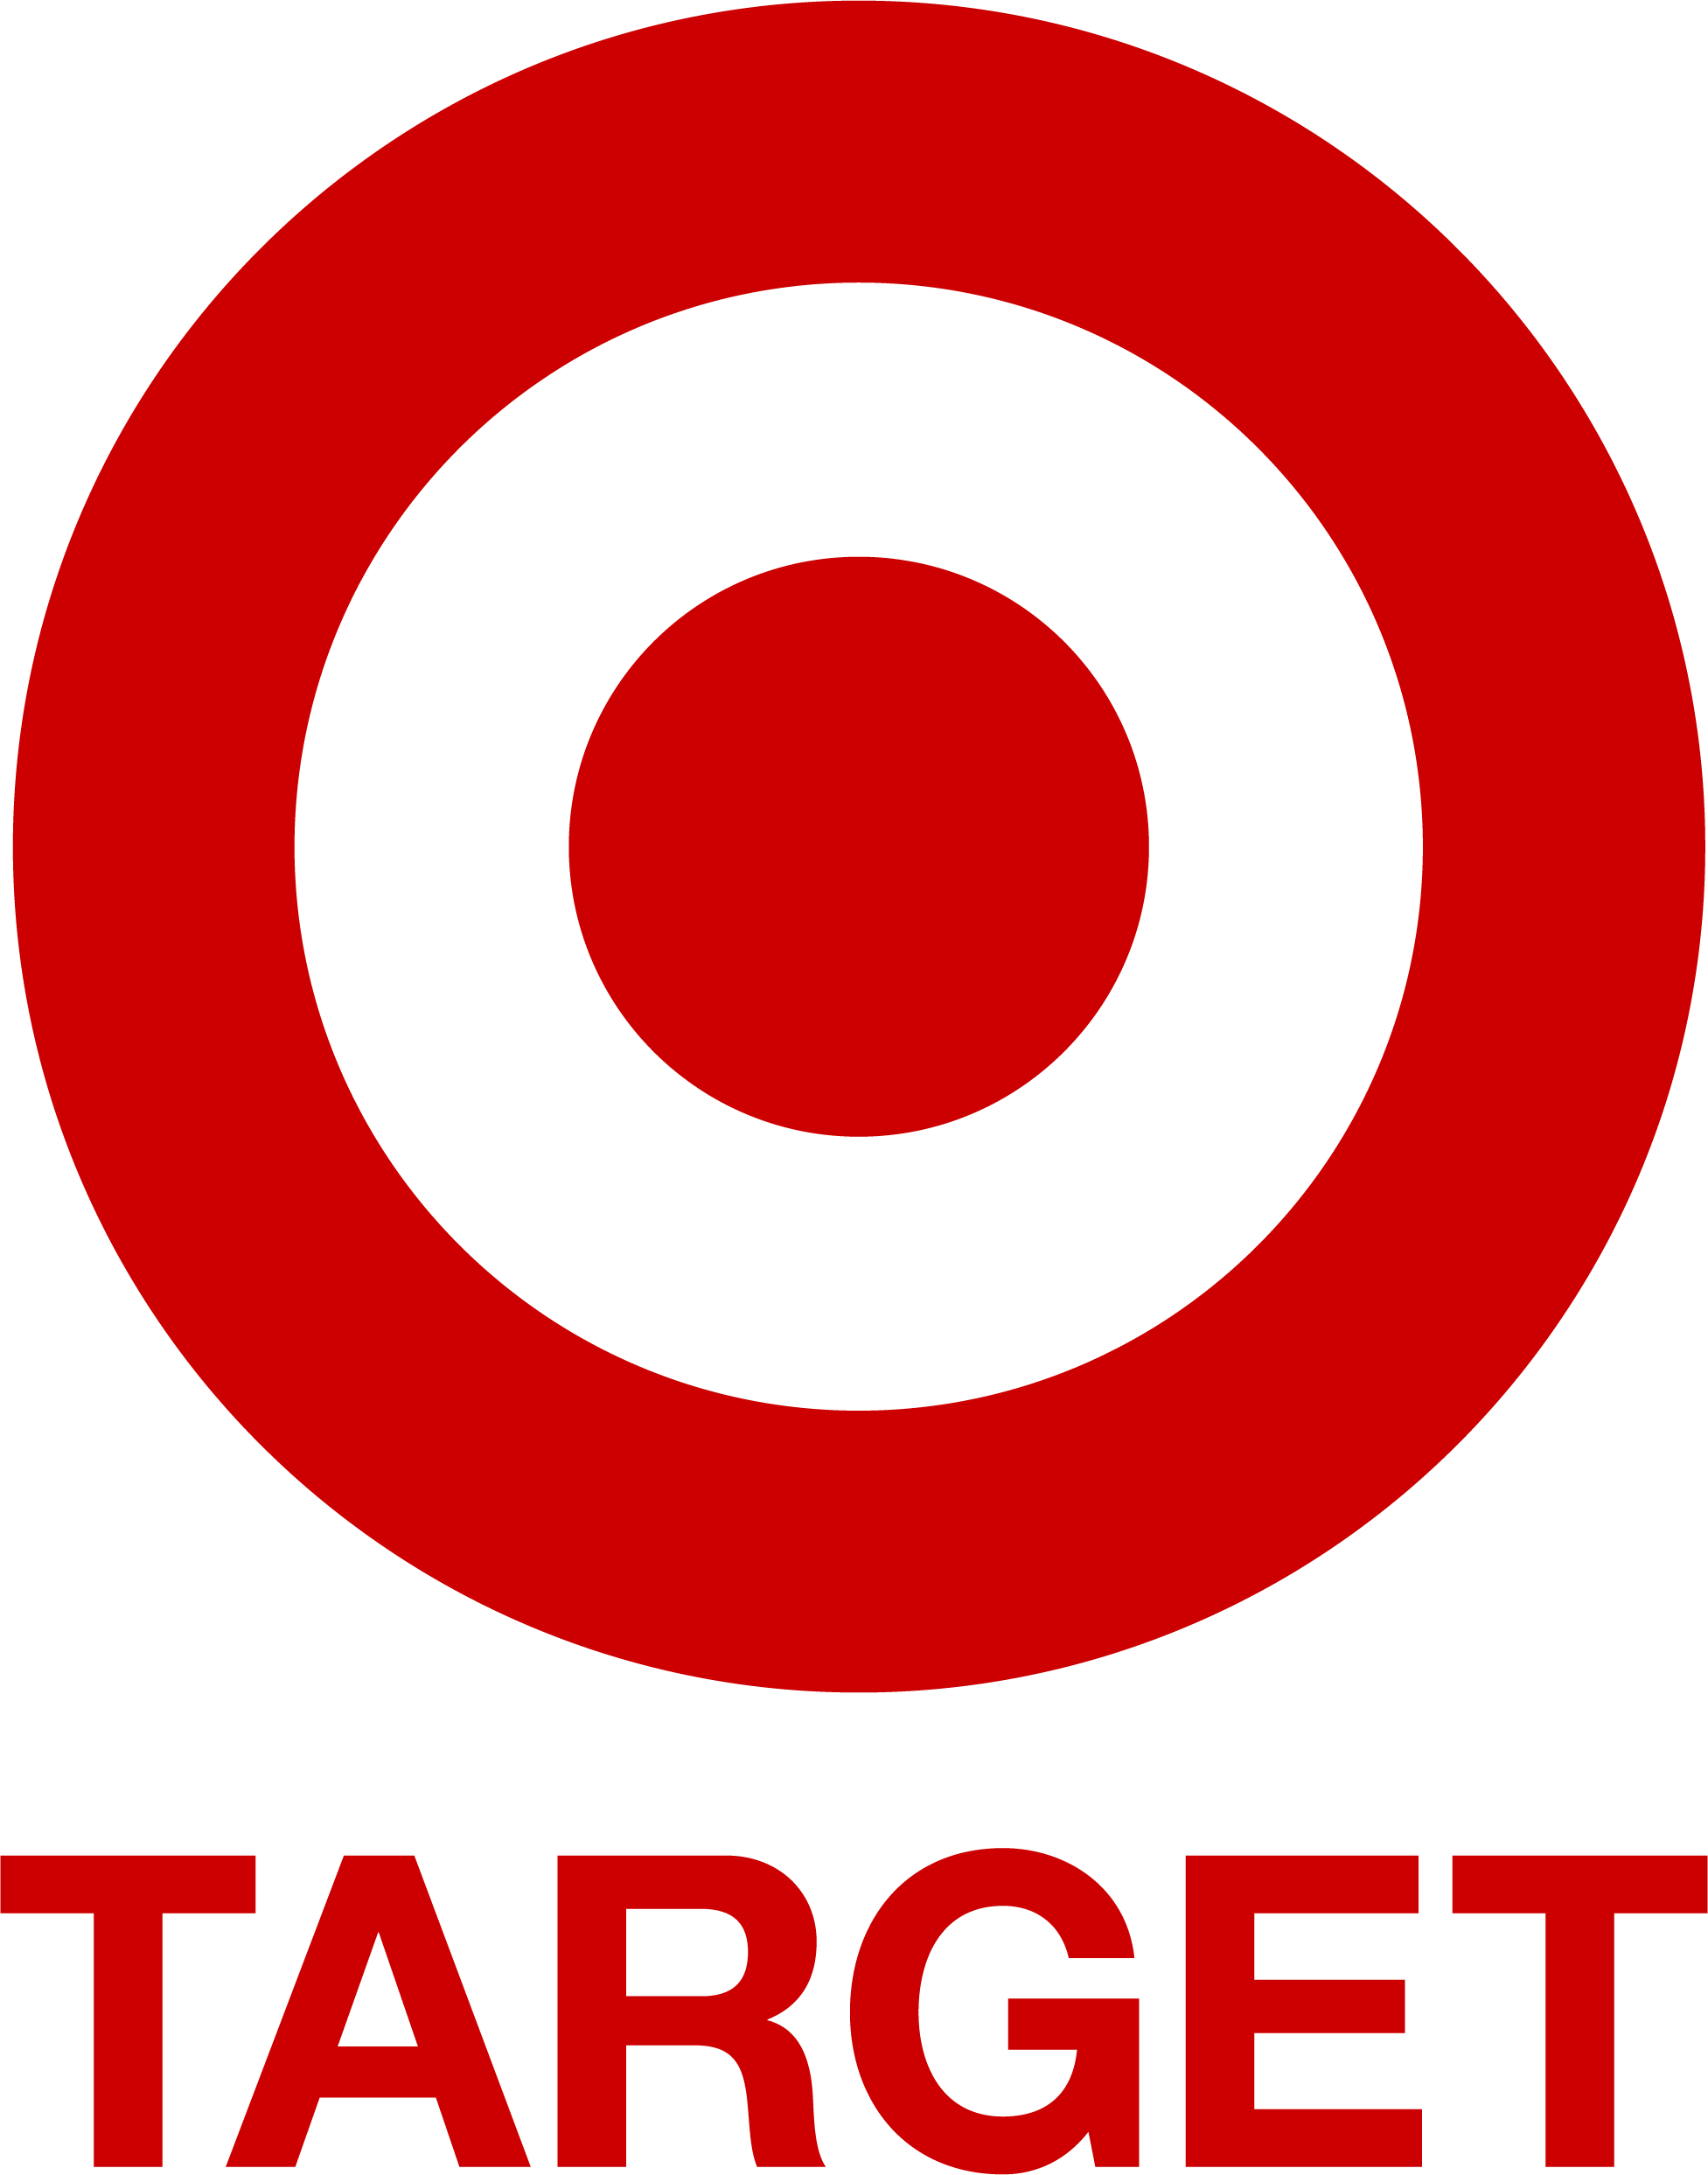 Discounts average $8 off with a Target Photo promo code or coupon. 31 Target Photo coupons now on RetailMeNot.